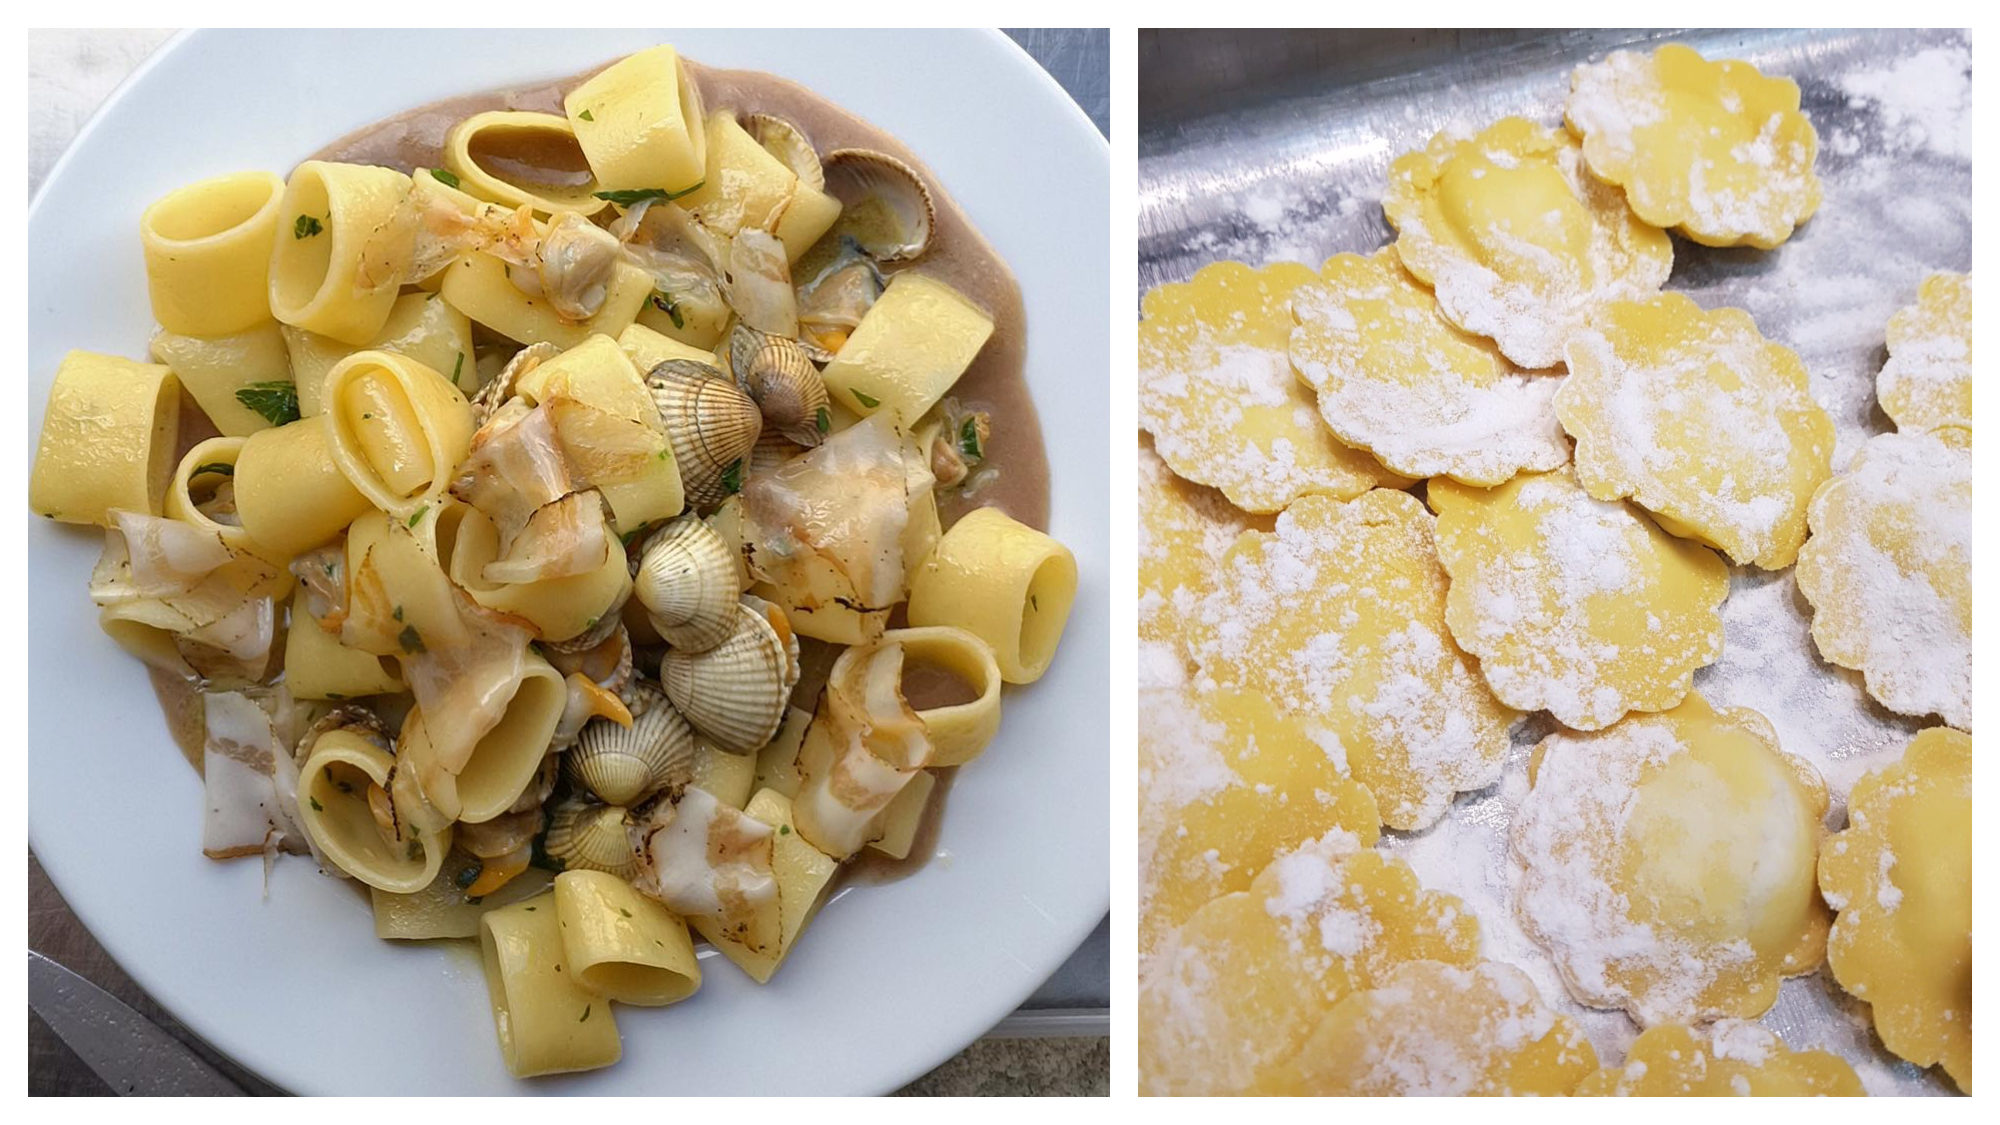 Mouth-watering hand-rollled clam and bacon pasta at Mimi Cave à Manger (left) and dry pasta being made at Manicaretti in Paris (right).